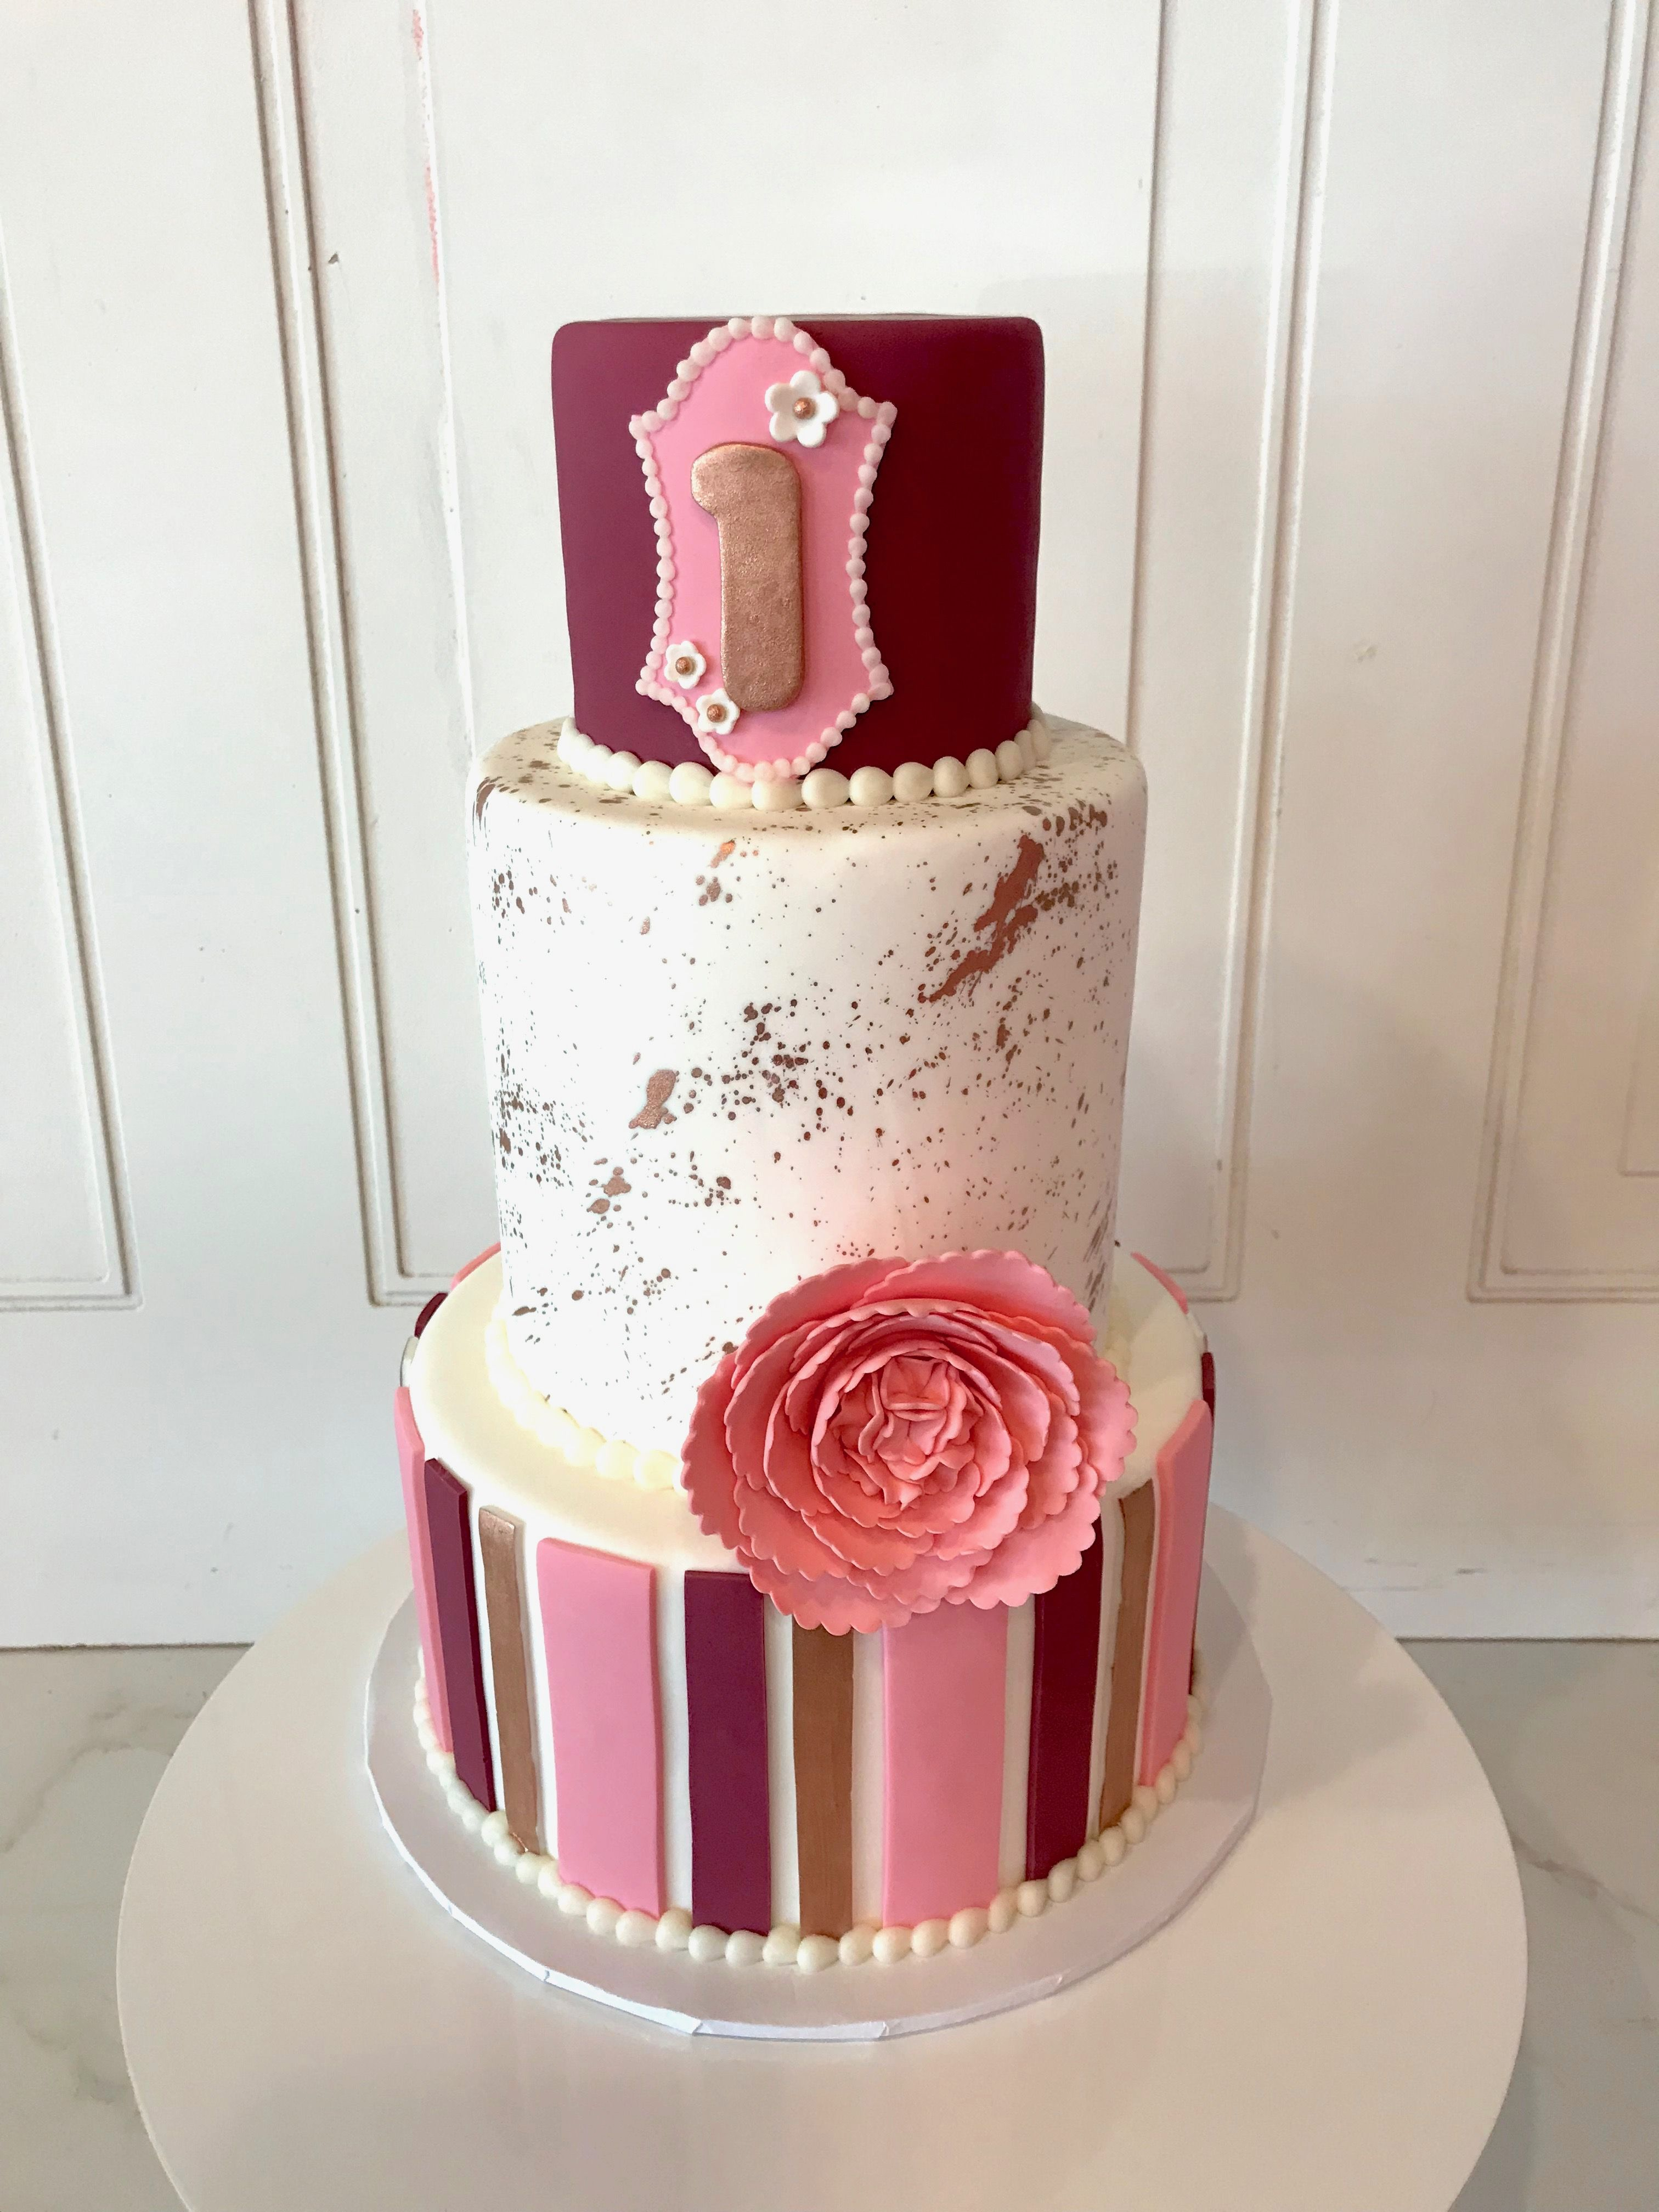 Stupendous 3 Tier First Birthday Cake In Shades Of Pink White And Gold By 3 Personalised Birthday Cards Paralily Jamesorg